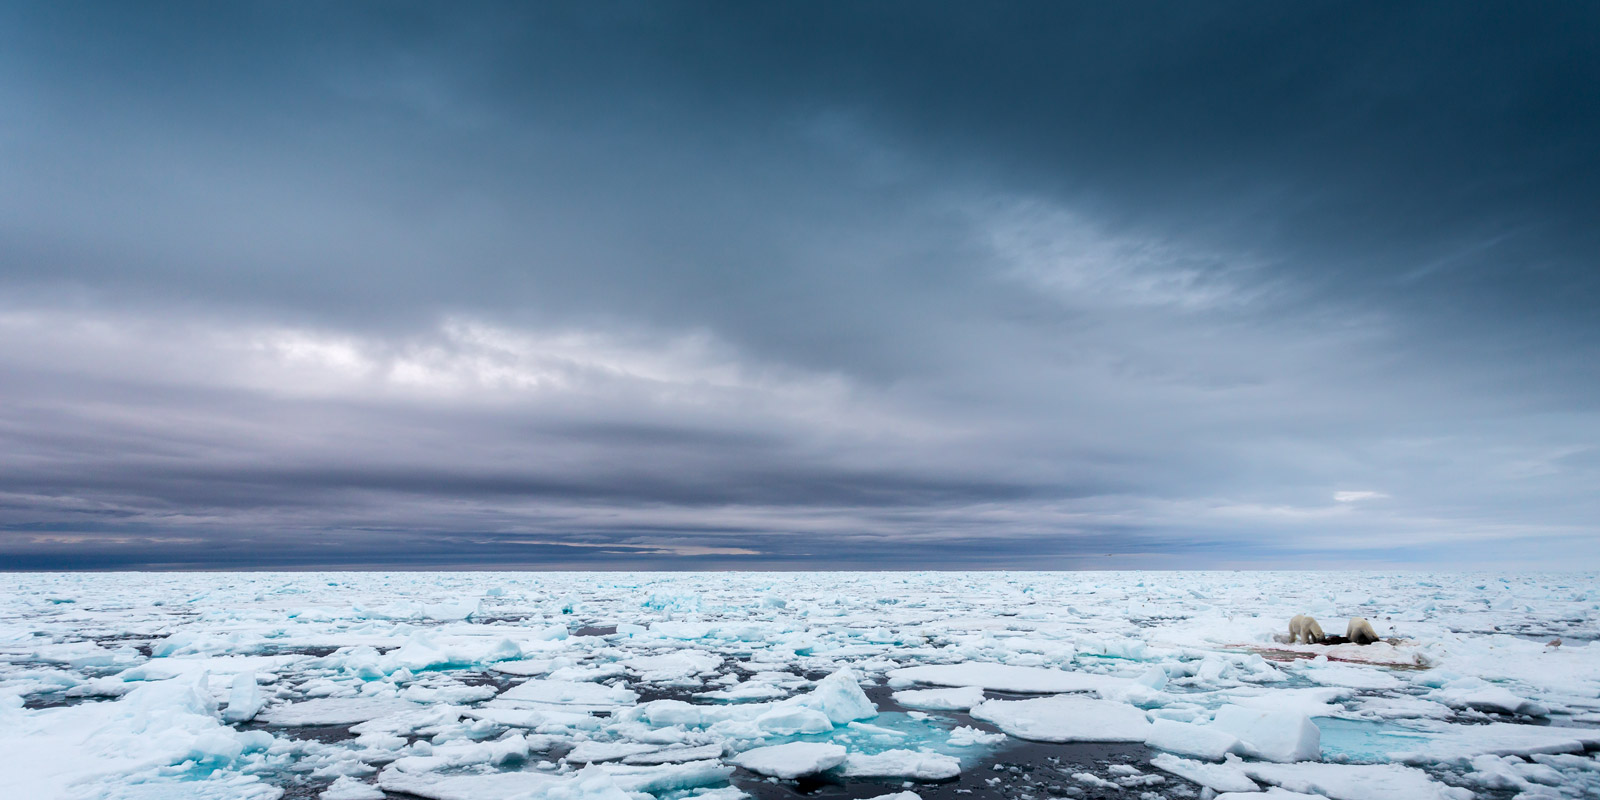 Norway, Spitsbergen, Polar Bear, Ice, limited edition, photograph, fine art, landscape, photo